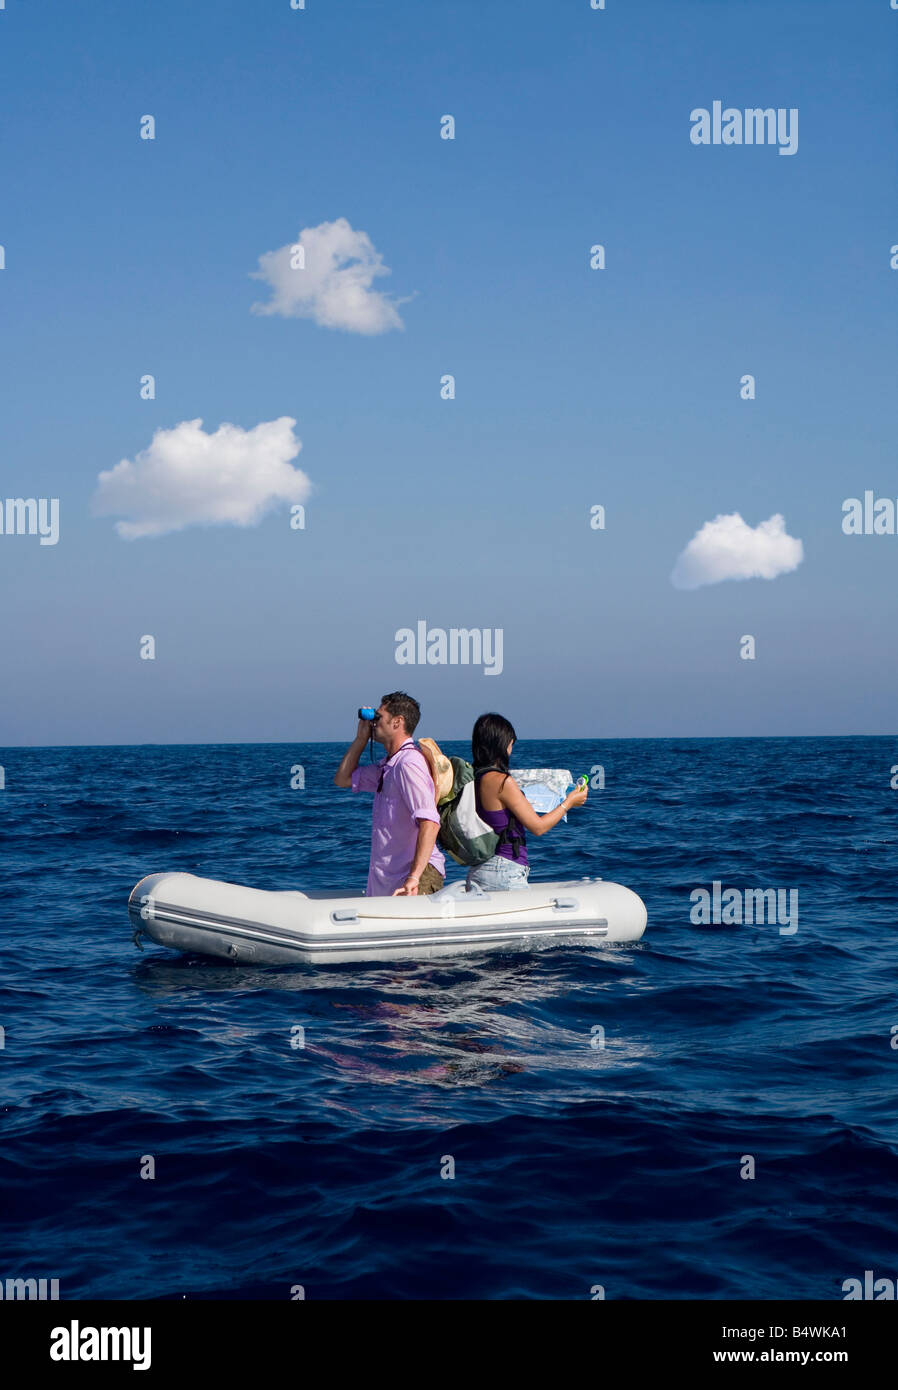 Couple Lost At Sea On Little Boat Stock Photo 20232969